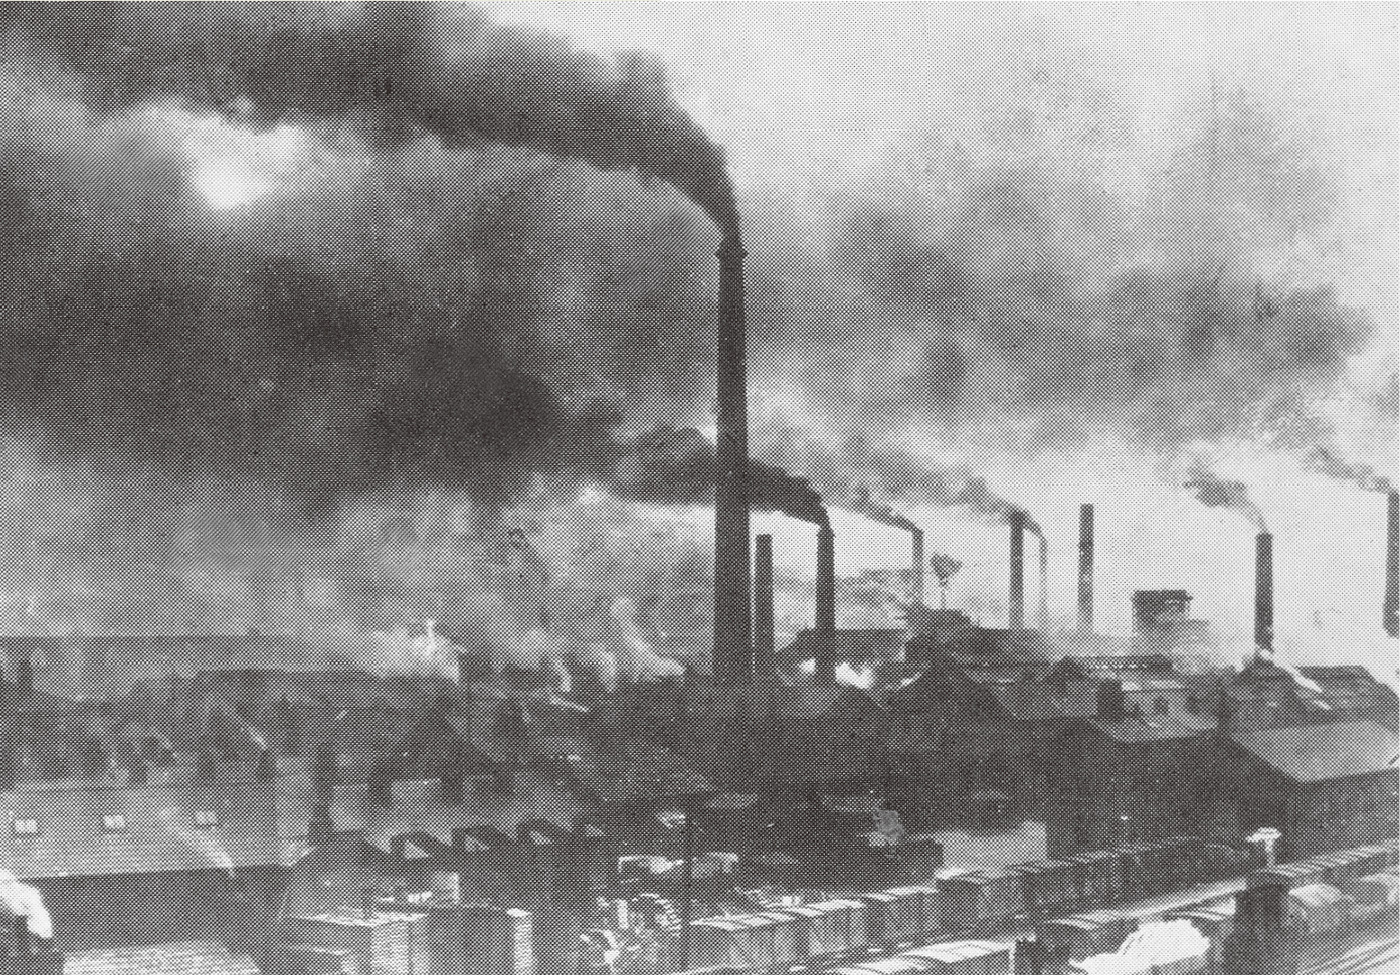 Photograph of Widnes in the late 19th century showing the effects of industrial pollution